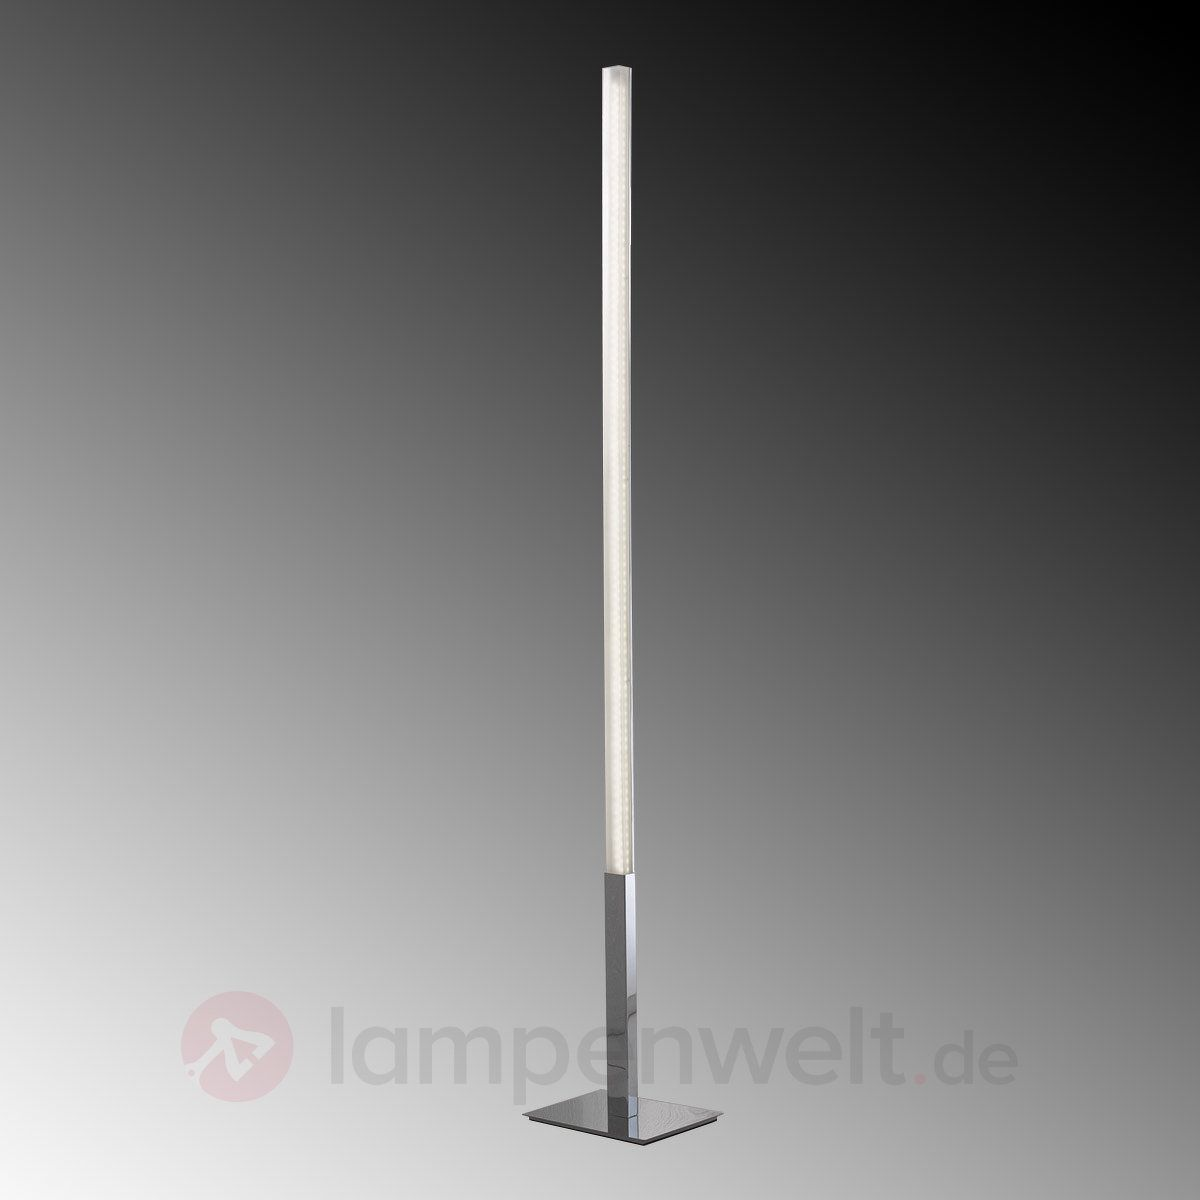 Full Size of Stehlampe Dimmbar Led Luxus Wohnzimmer Stehlampen Schlafzimmer Wohnzimmer Stehlampe Dimmbar